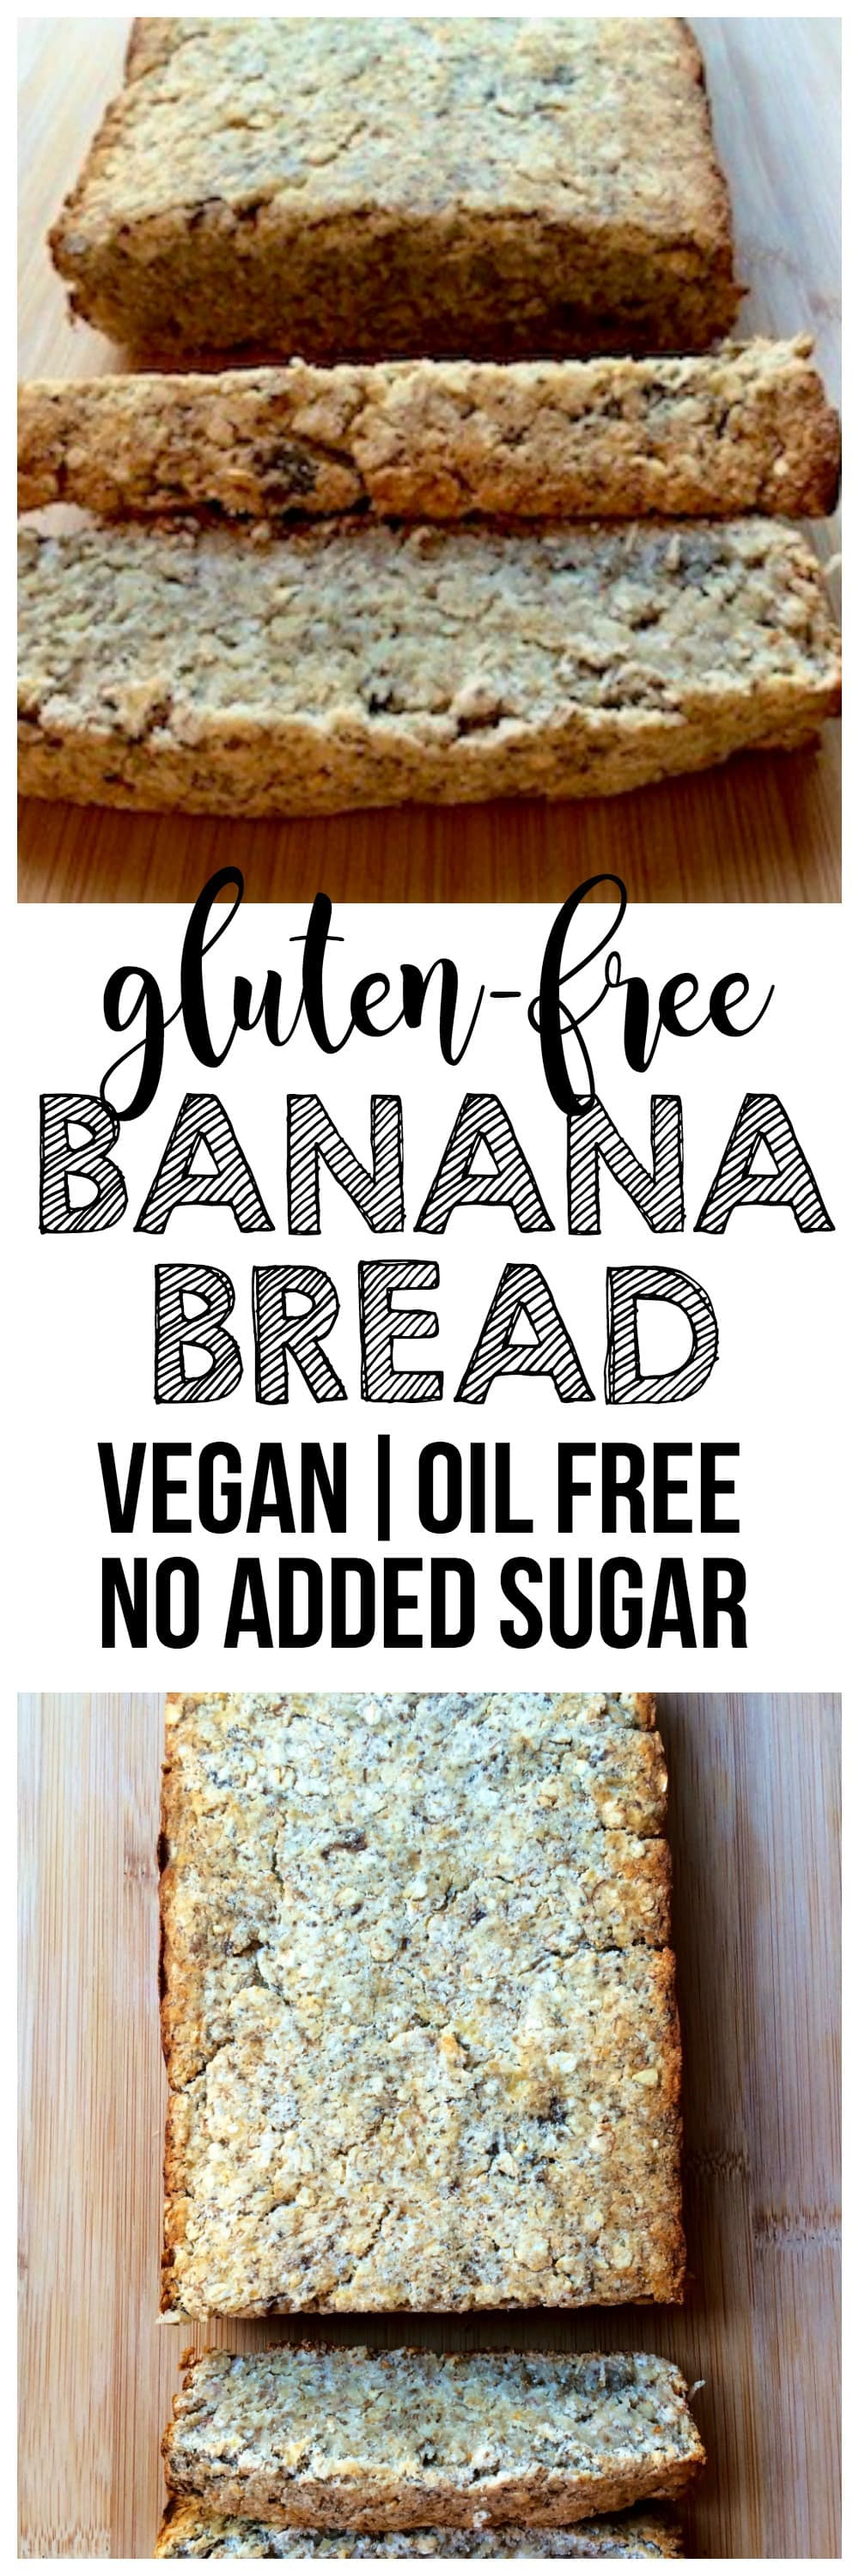 Gluten-Free Vegan Banana Bread! Totally delicious and easy to make. Oil-free, no added sugar, and less than 100 calories per slice.